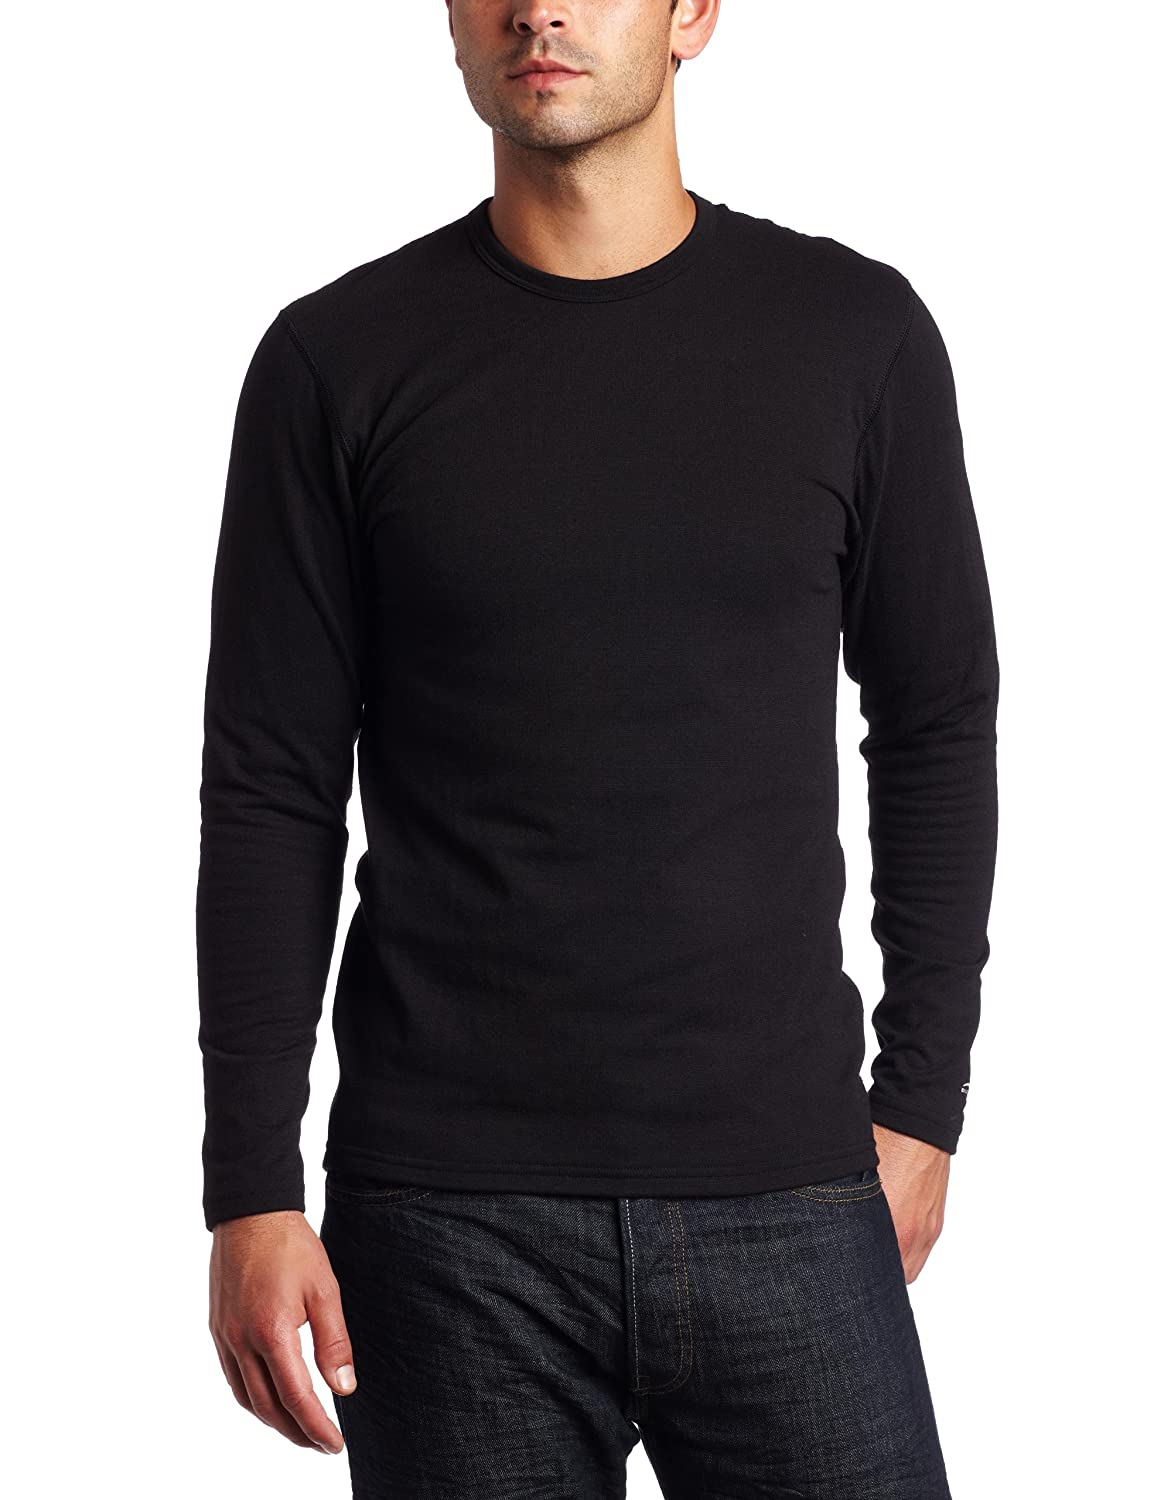 Duofold Men's Expedition Weight Two-Layer Thermal Tagless Crew, Black, Small 820A